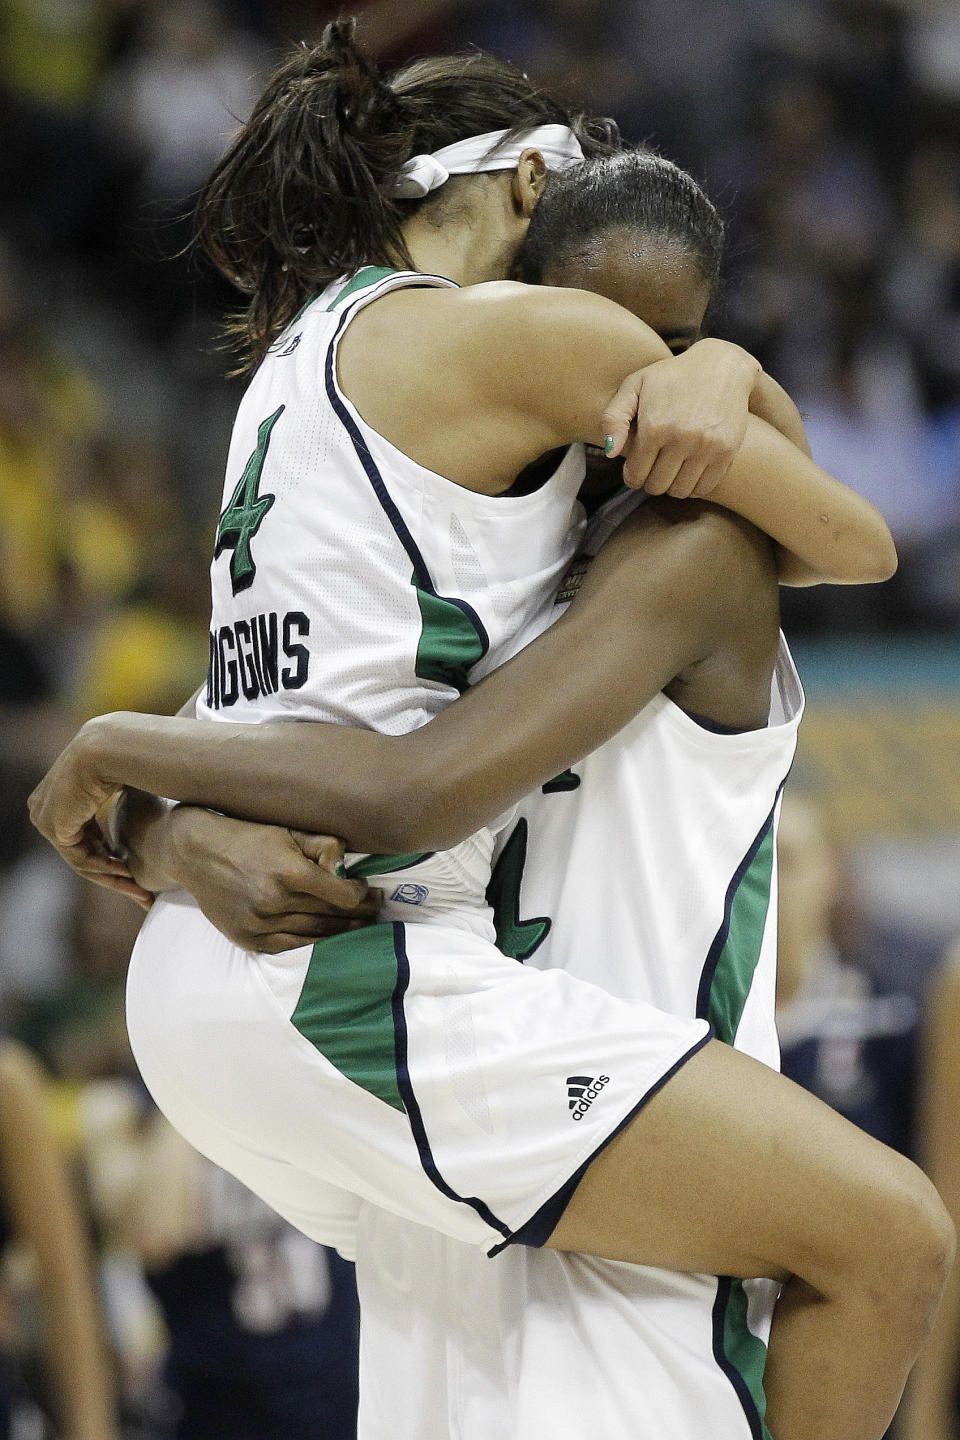 Notre Dame guard Skylar Diggins (4) and Notre Dame forward Devereaux Peters (14) embrace after overtime in the NCAA women's Final Four semifinal college basketball game against Connecticut, in Denver, Sunday, April 1, 2012. Notre Dame won 83-75. (AP Photo/Eric Gay)